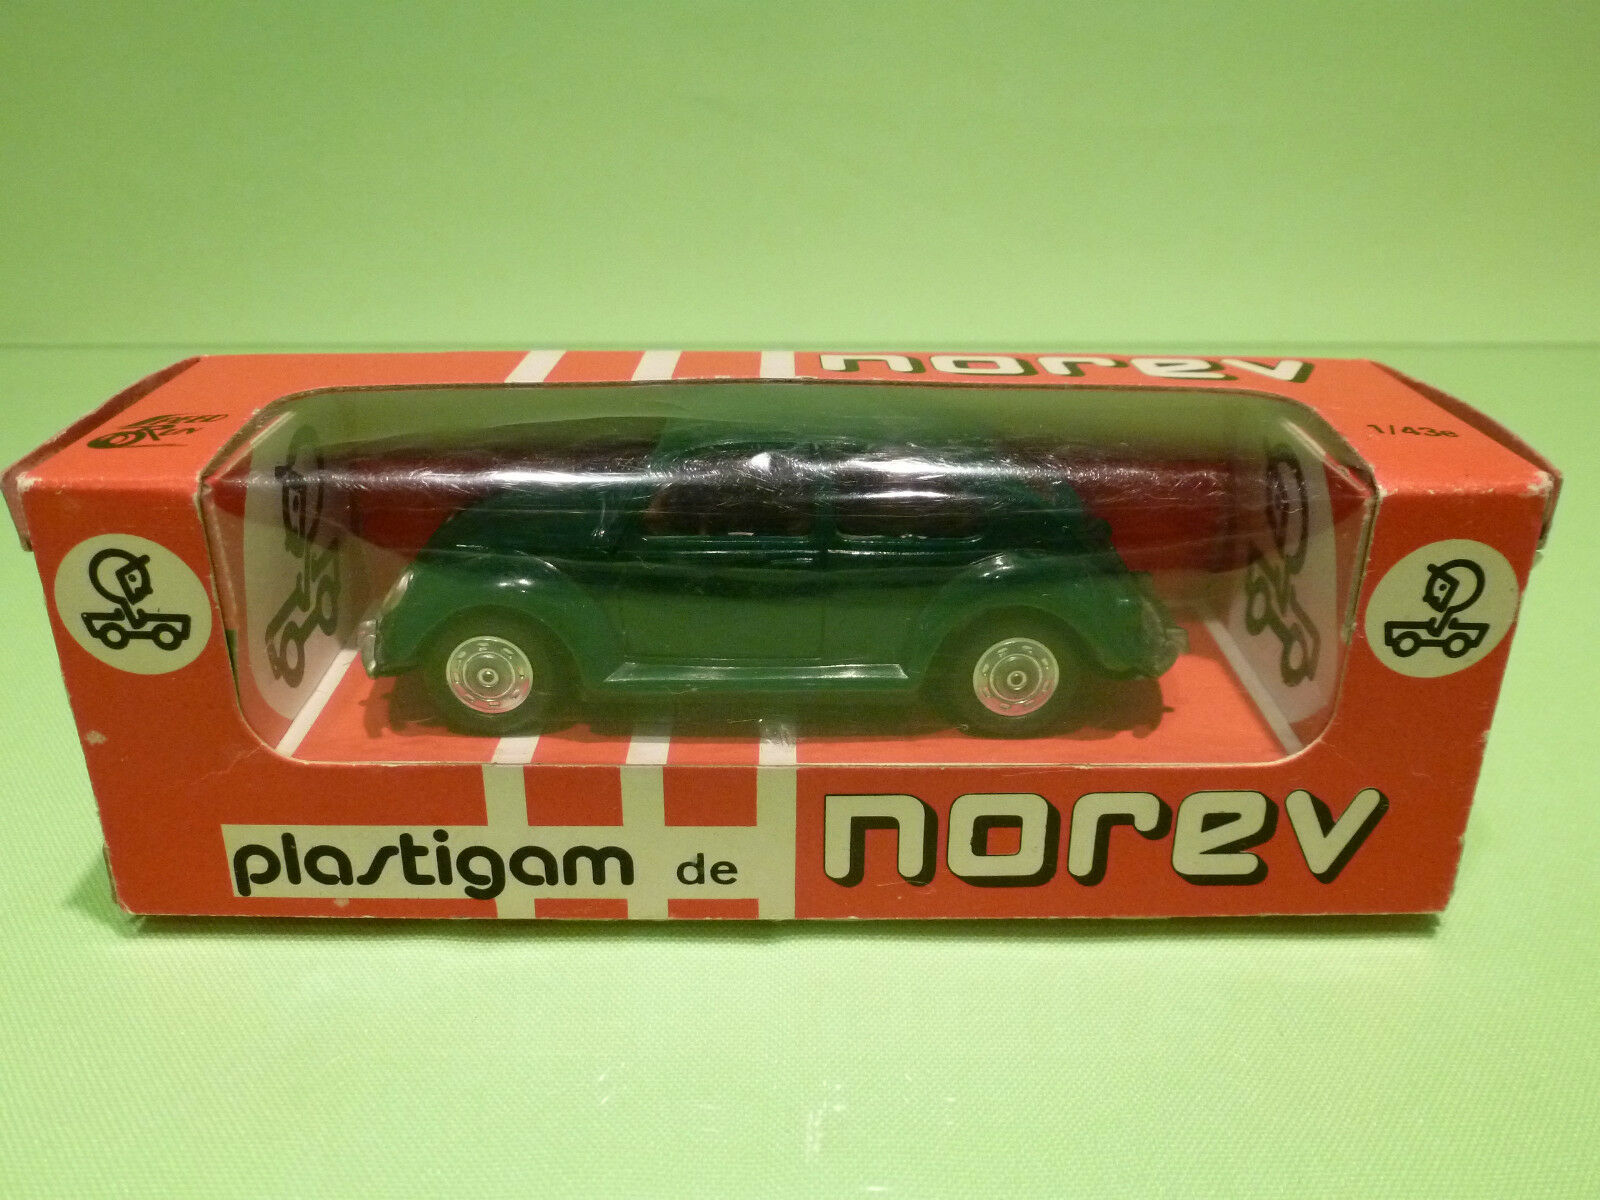 NOREV  1 43 - VOLKSWAGEN 1300 1300 1300 - VW BEETLE NO= 62   - IN NEAR MINT  CONDITION 64a446